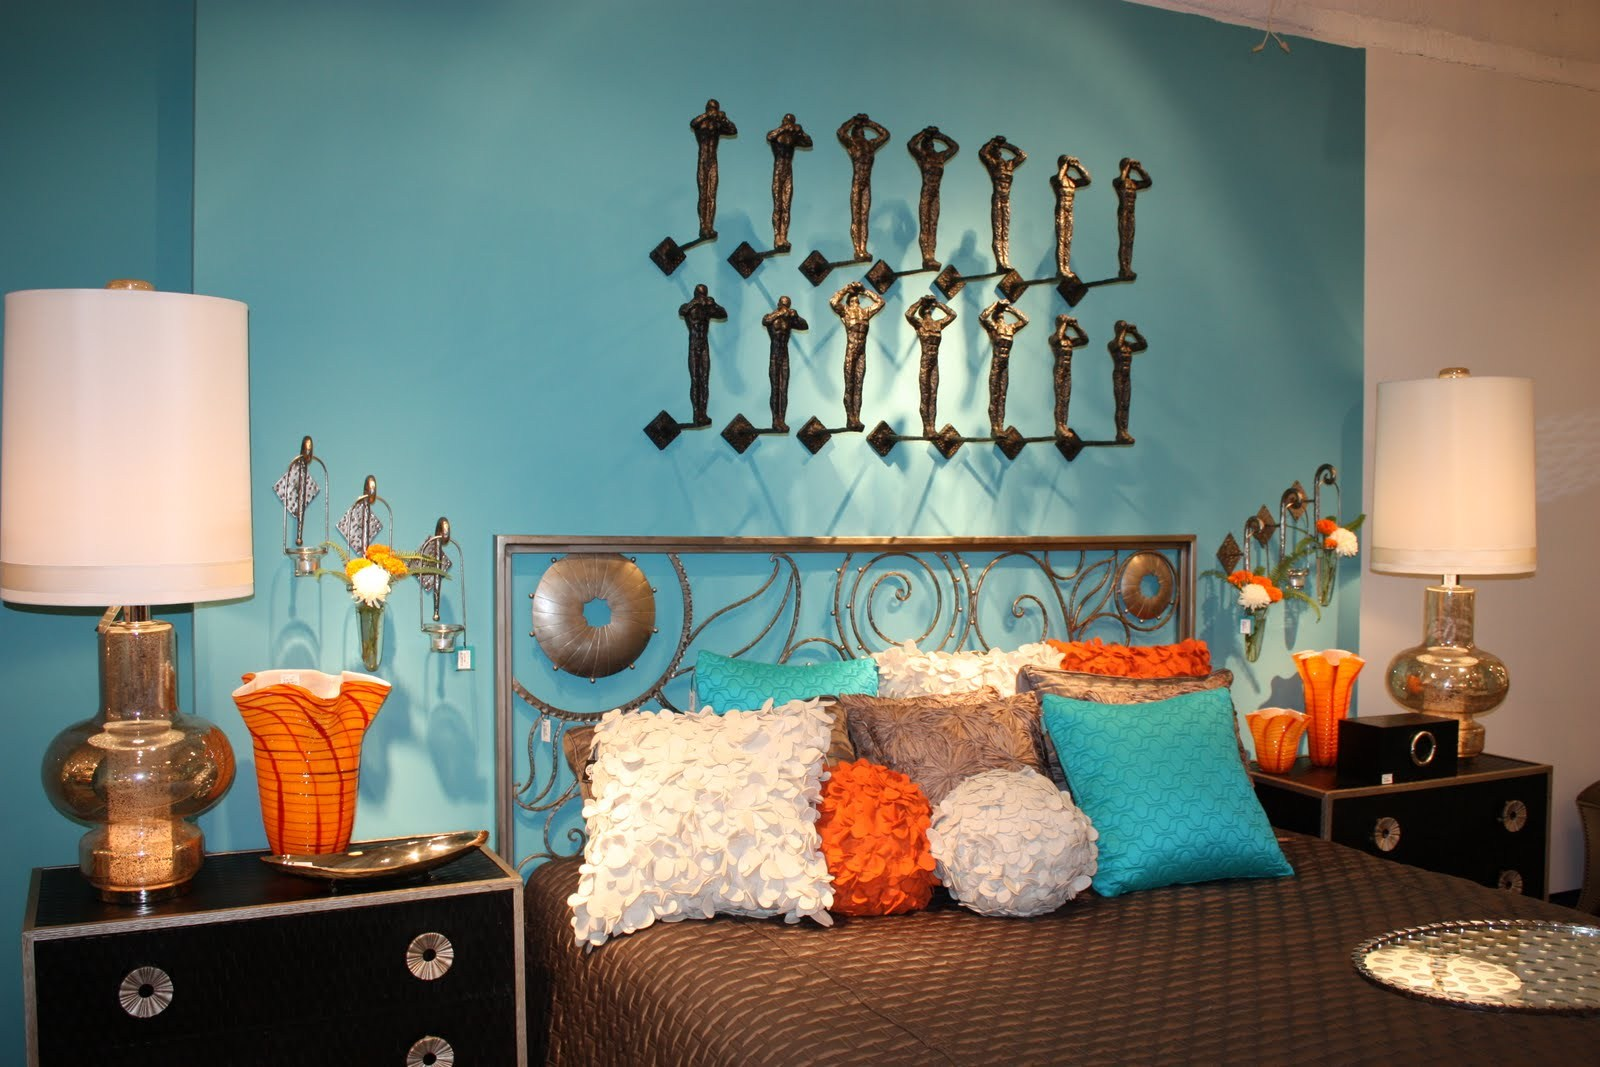 Orange and Turquoise Room Ideas for Sleeping